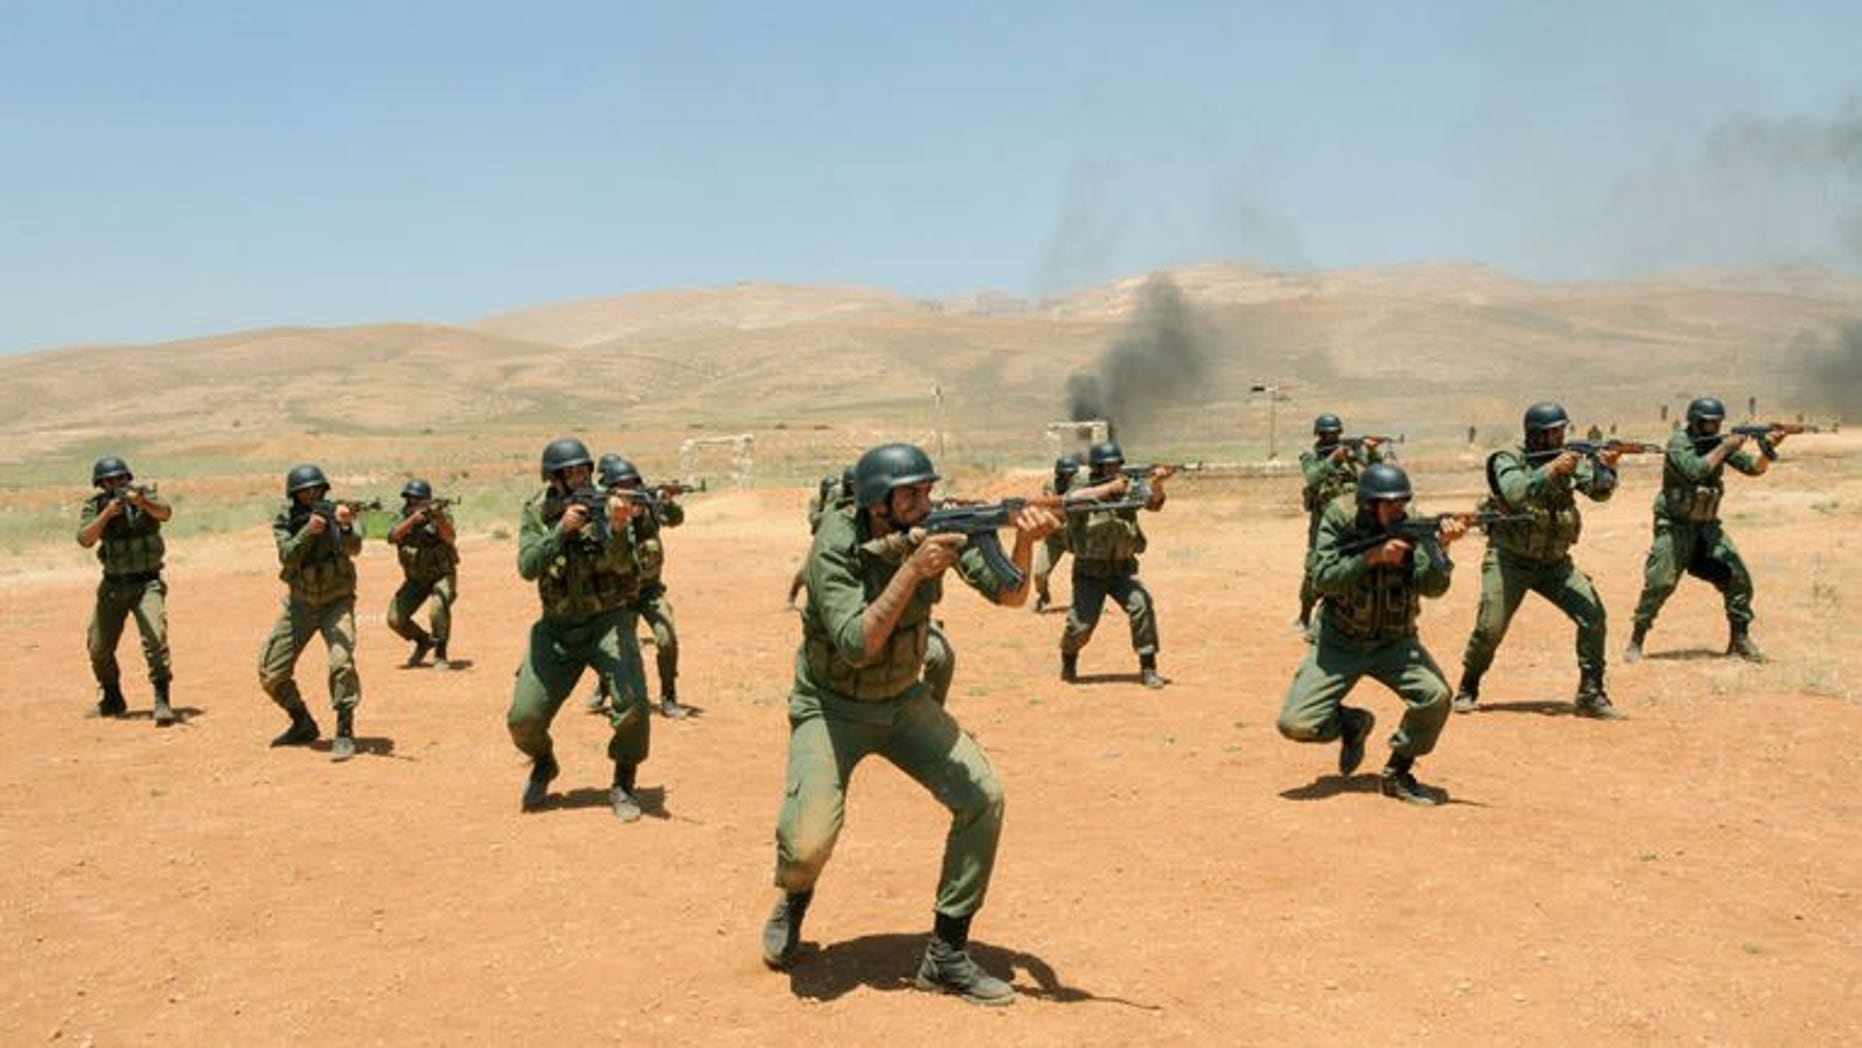 """Syrian government soldiers take part in a training exercise at an undisclosed training camp in Syria on may 22, 2013. US Secretary of State John Kerry says supporters of the Syrian opposition will step up military and other aid in a bid to end an """"imbalance"""" on the ground in President Bashar al-Assad's favour."""